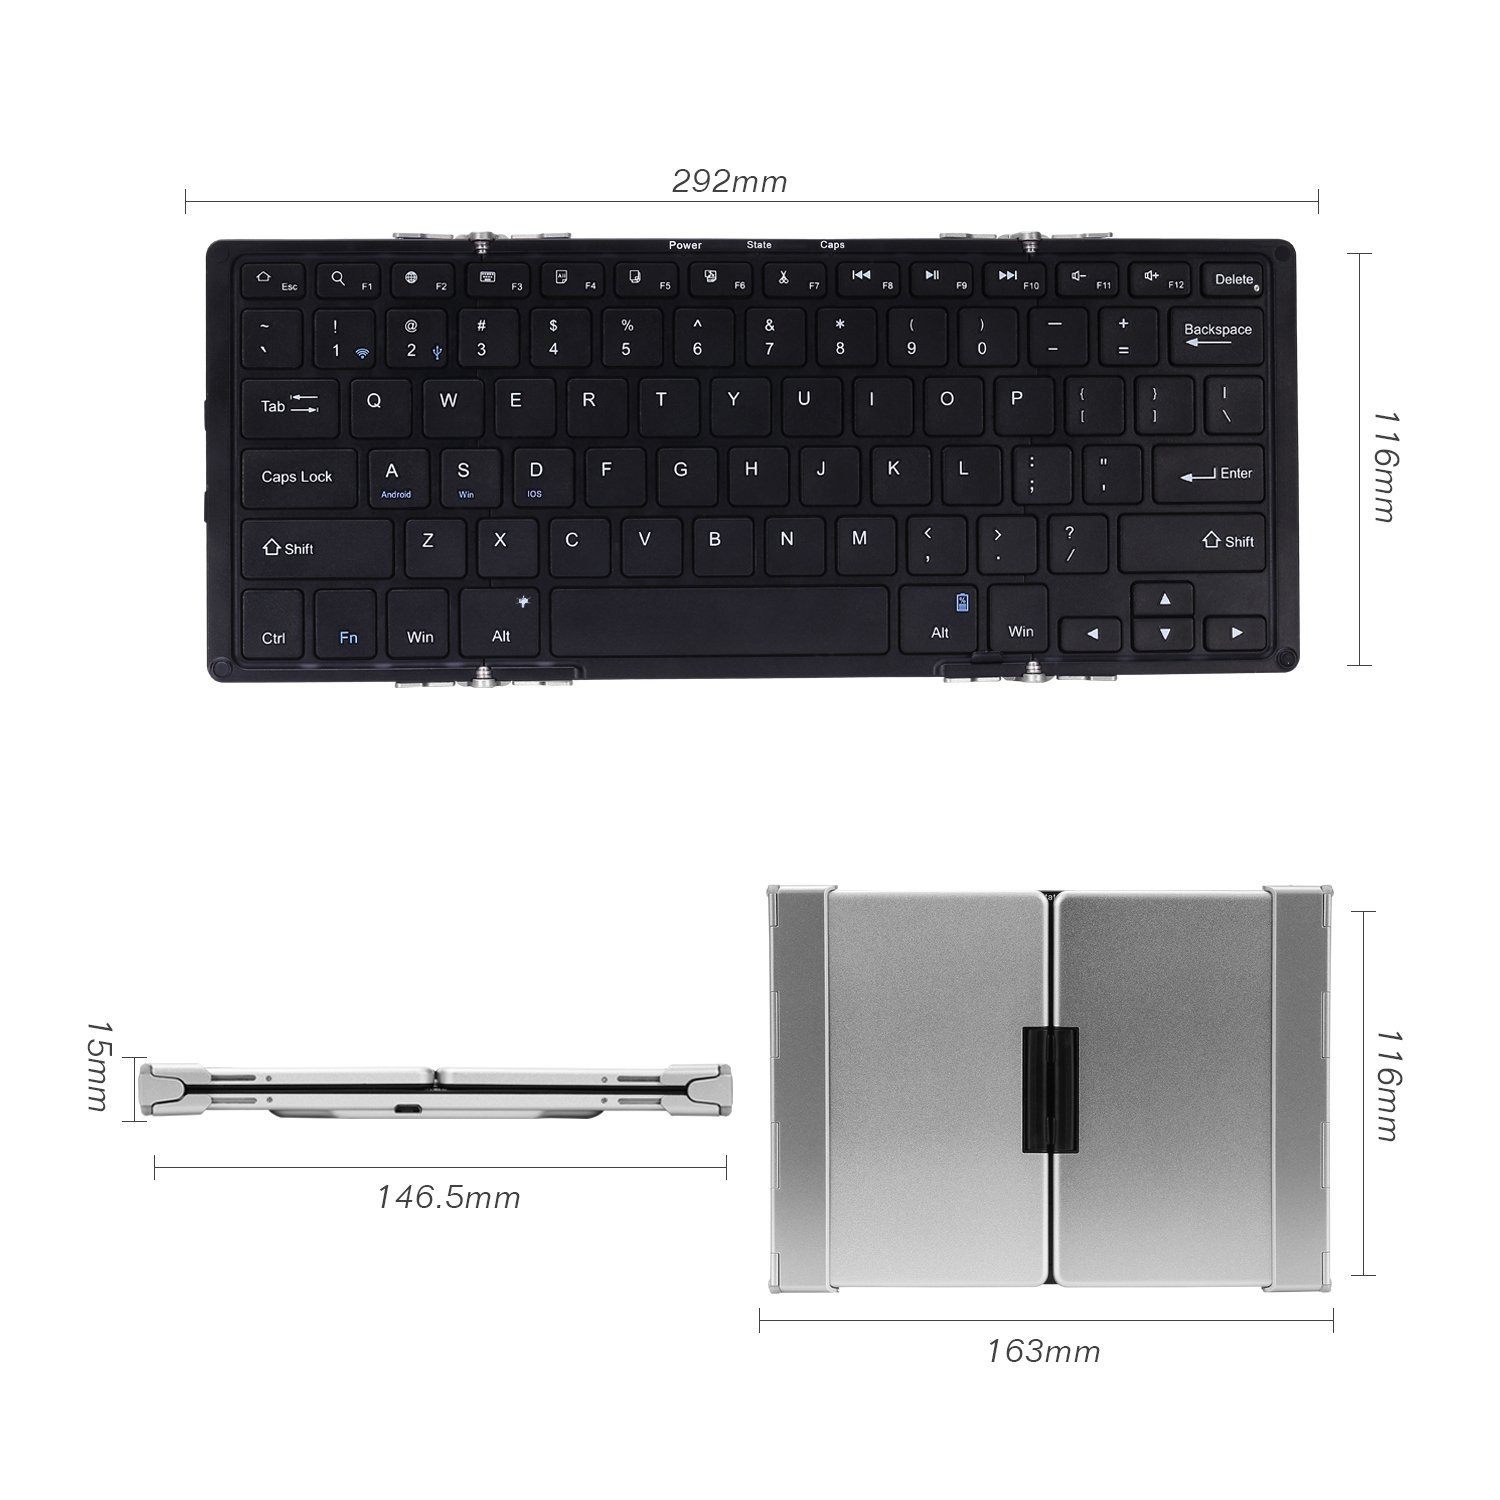 Typing Keyboard Recommendations - Equipment - lines